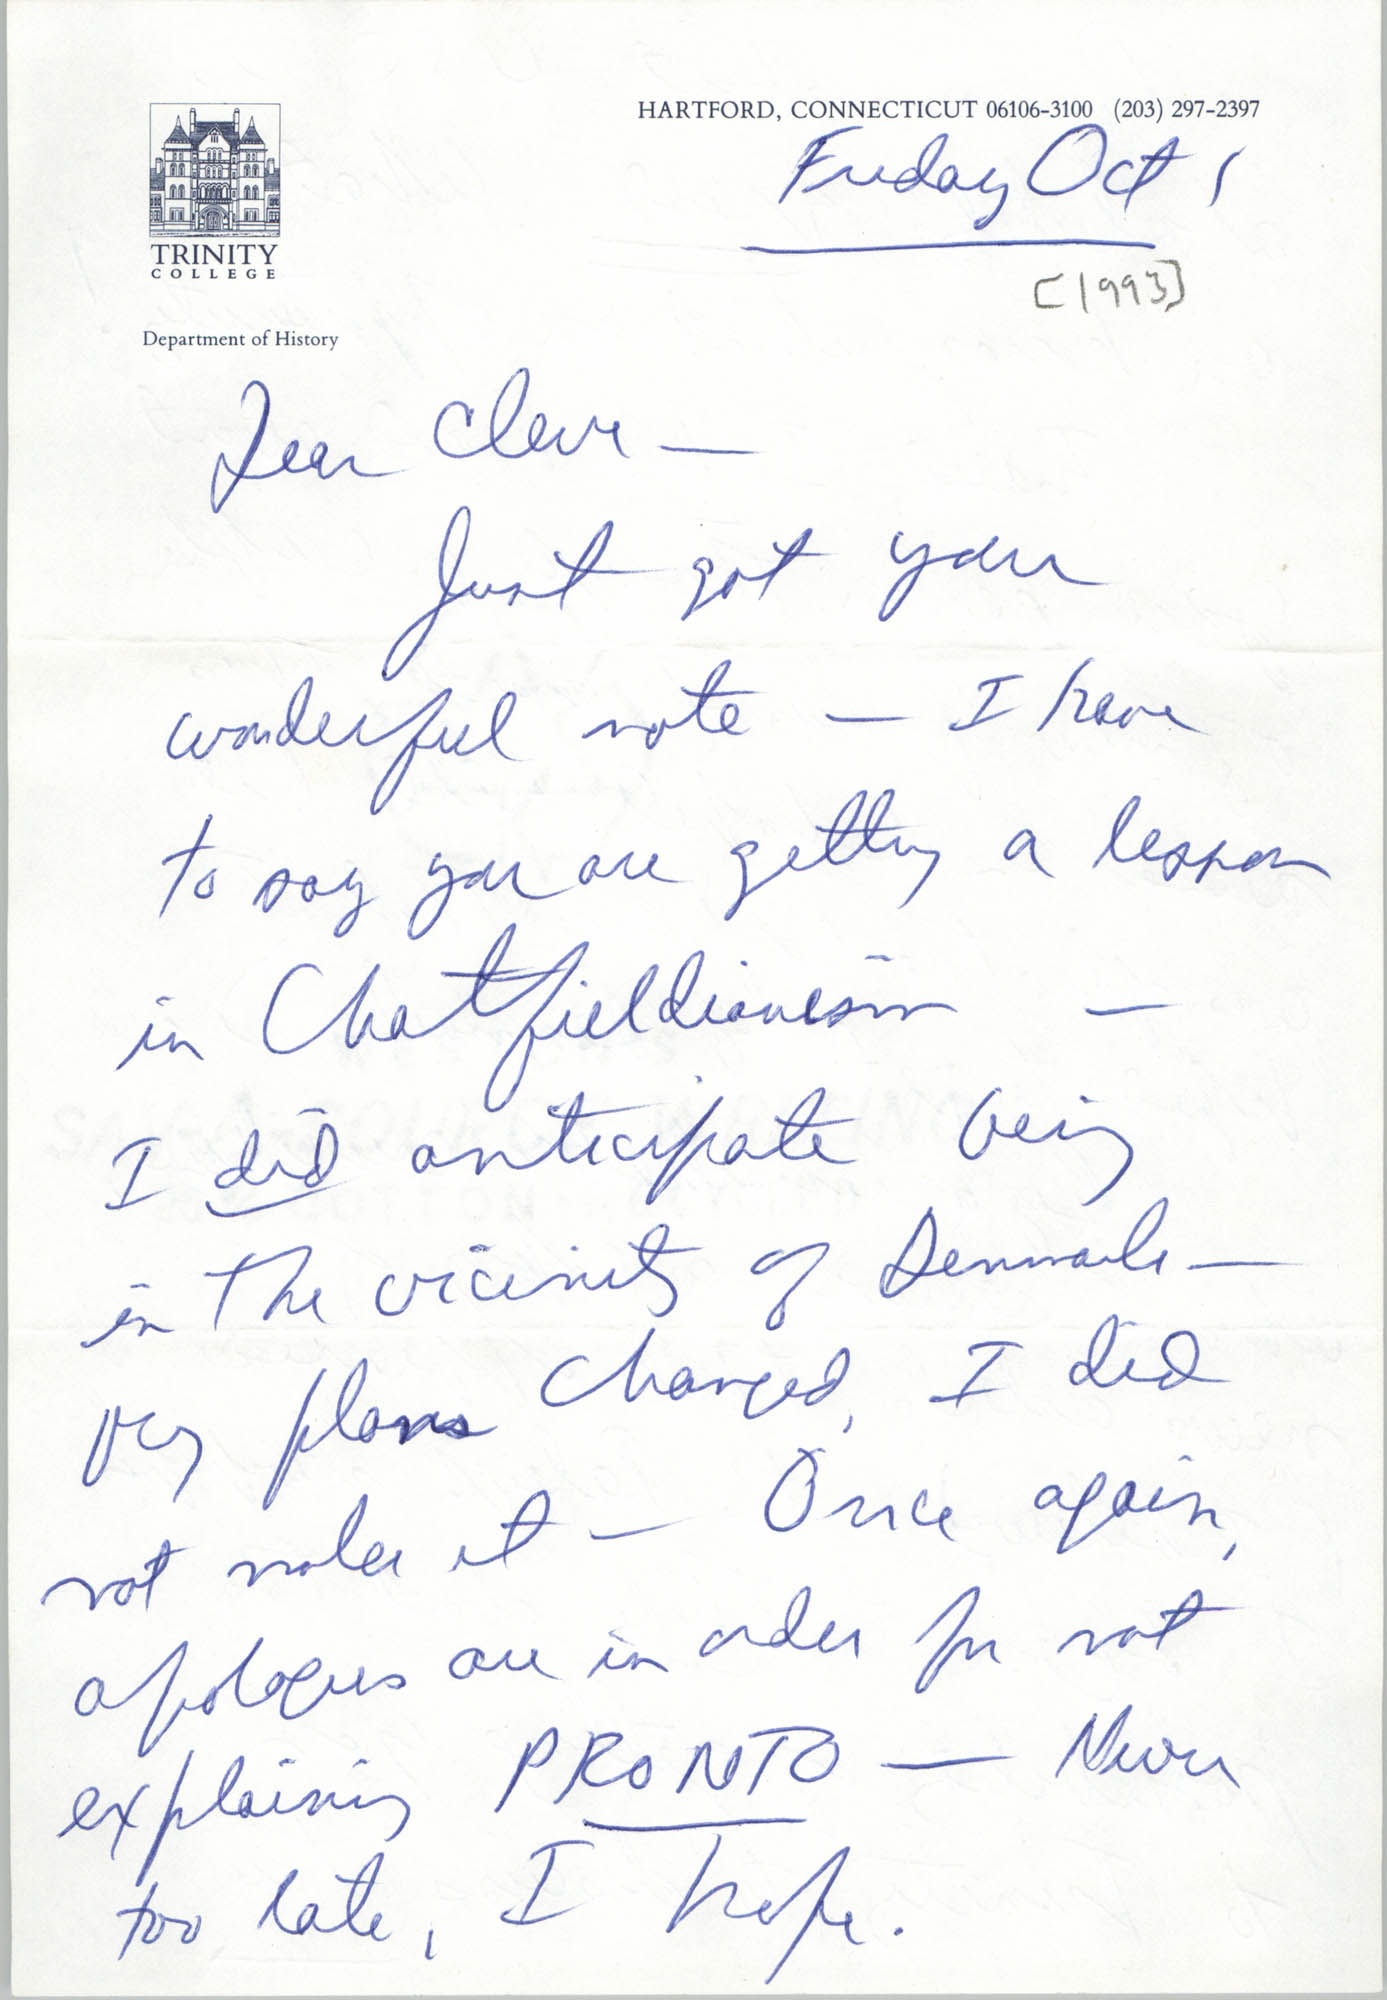 Letter from Jack Bass to Cleveland Sellers, October 1, 1993